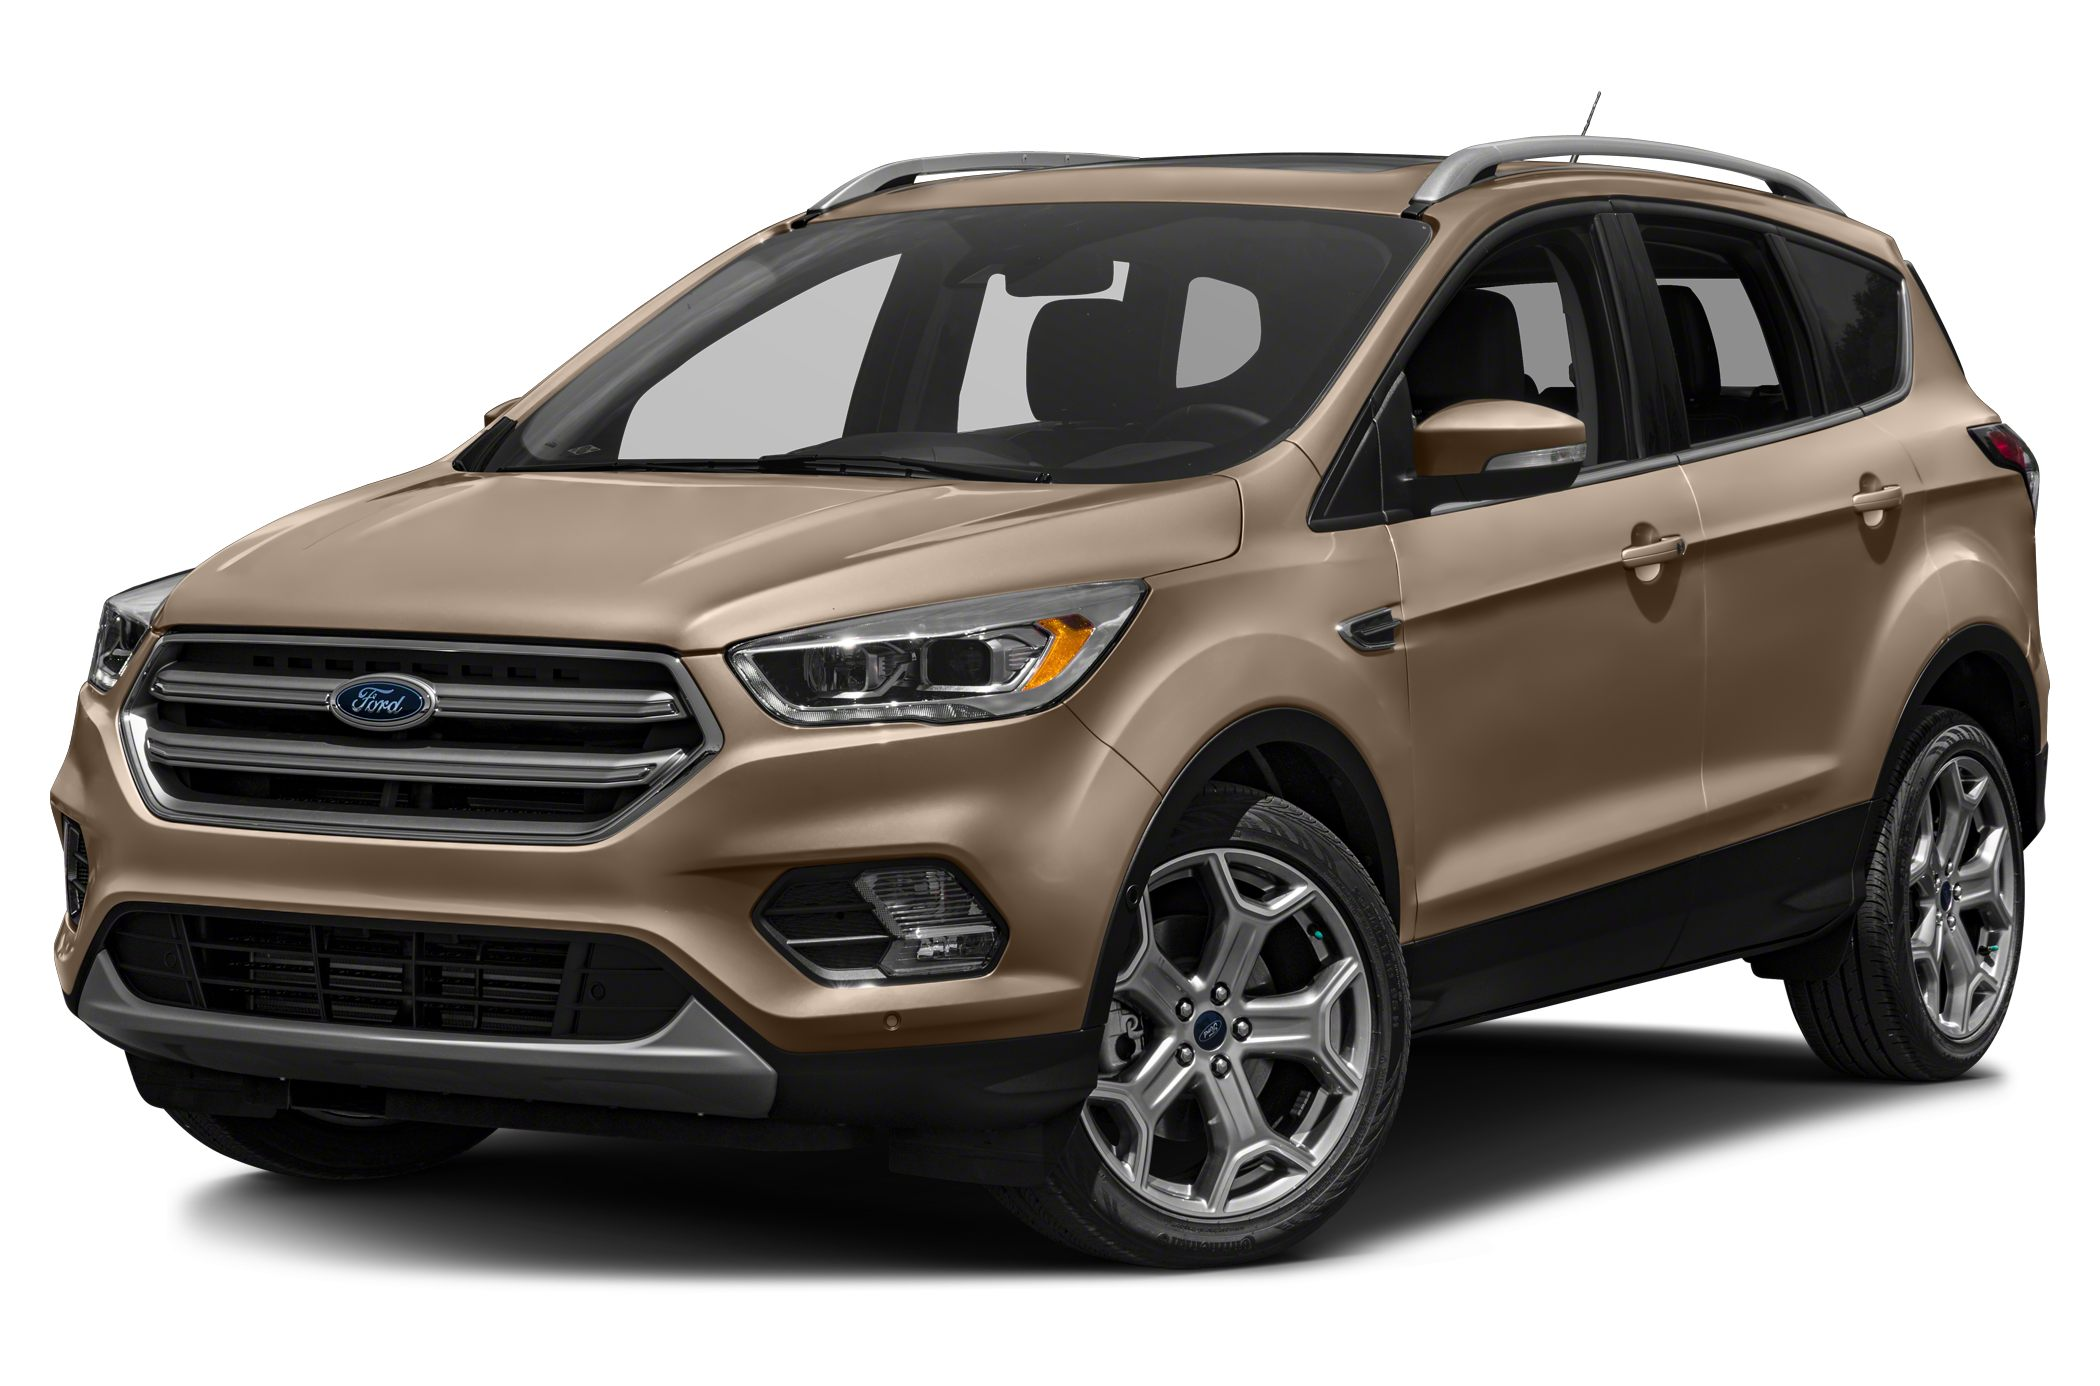 2017 Ford Escape Titanium 2017 Ford Escape Titanium Escape Titanium 20L Auto High Beams Bi-Xen